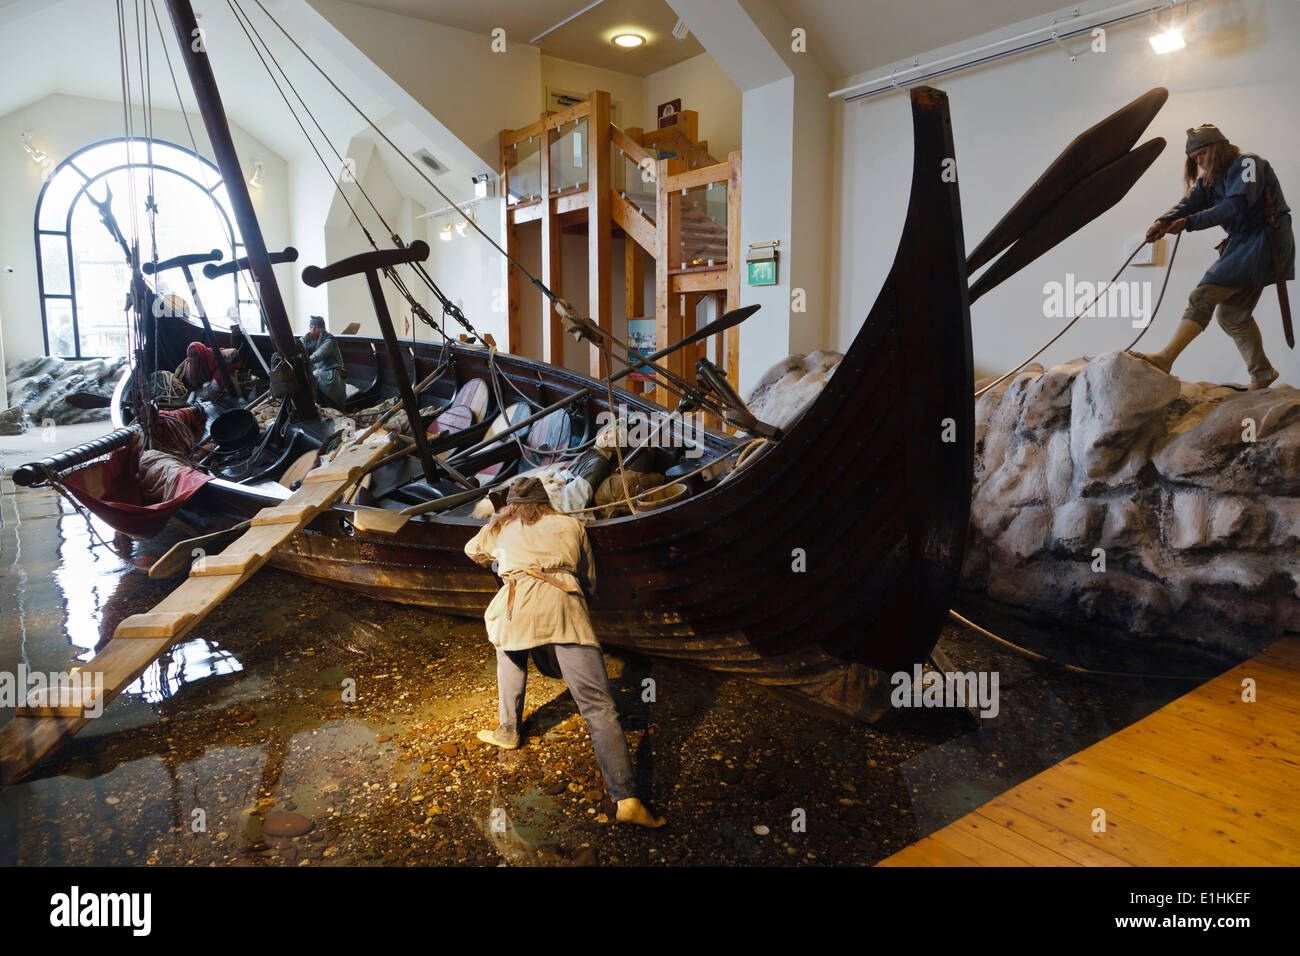 Odin's Raven Viking longboat replica at the House of Manannan, Peel, Isle of Man - Stock Image